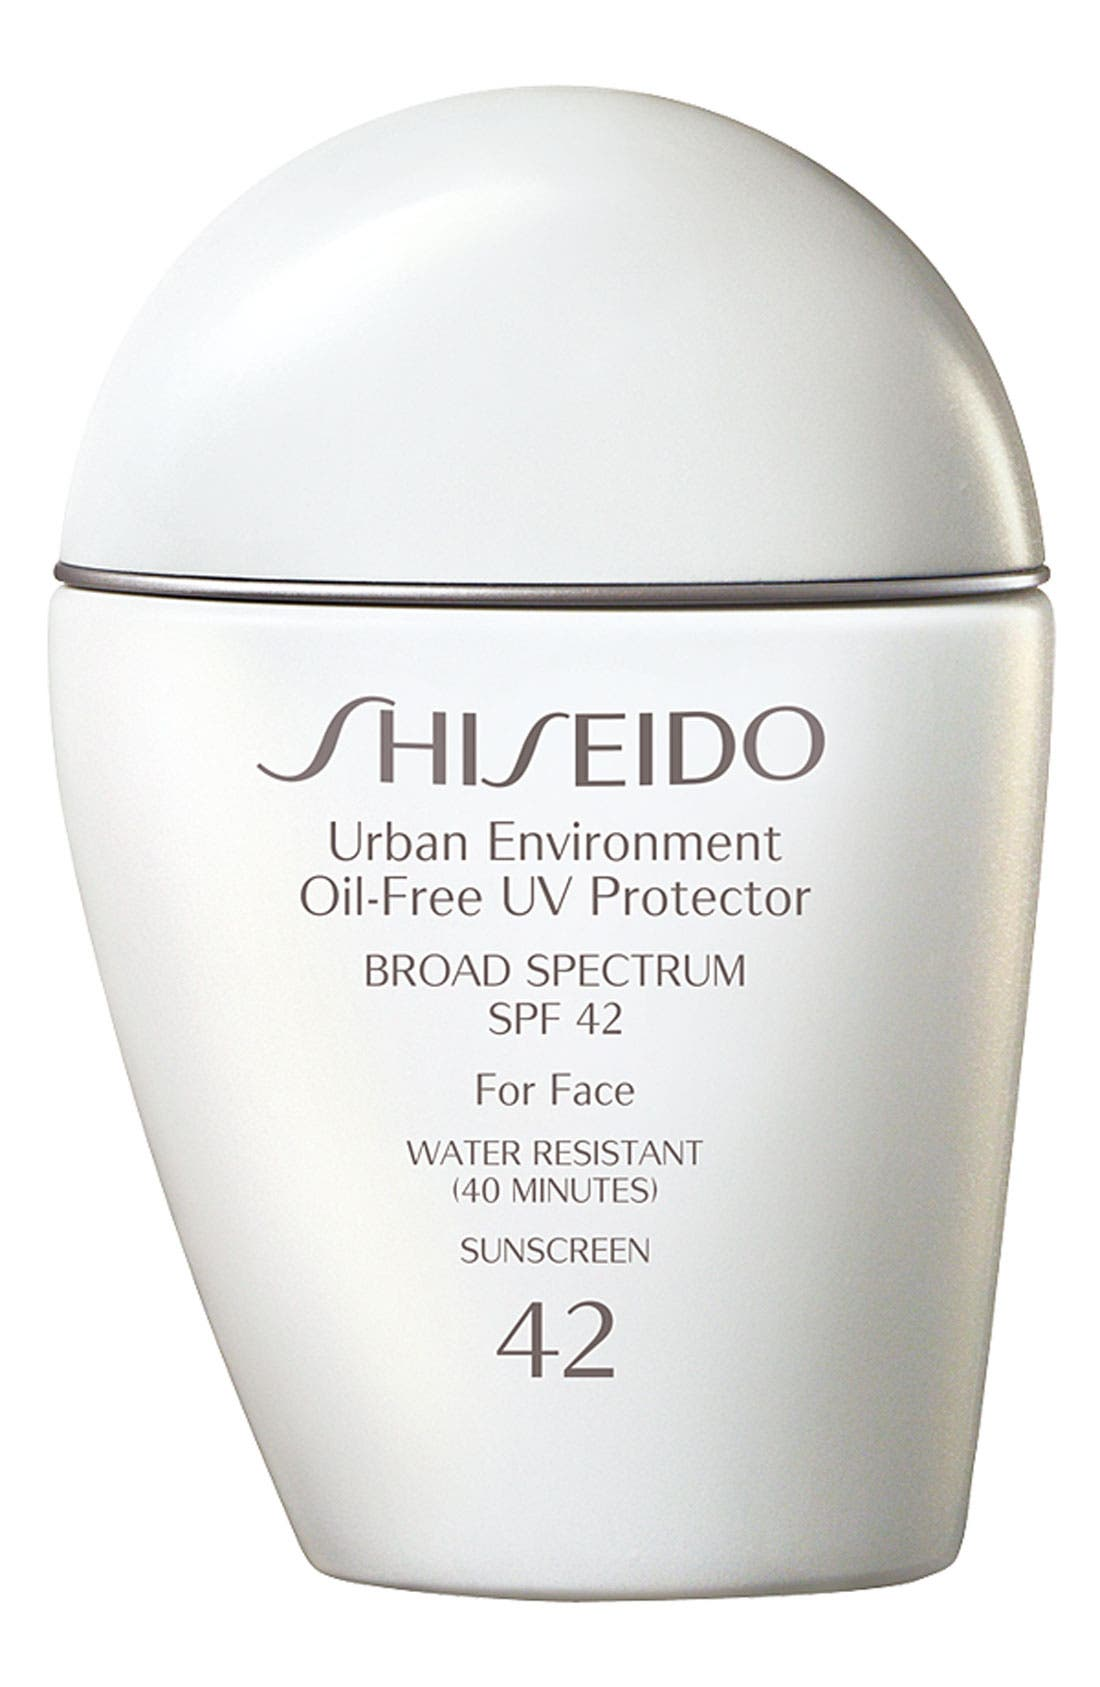 Shiseido 'Urban Environment' Oil-Free UV Protector Broad Spectrum SPF 42